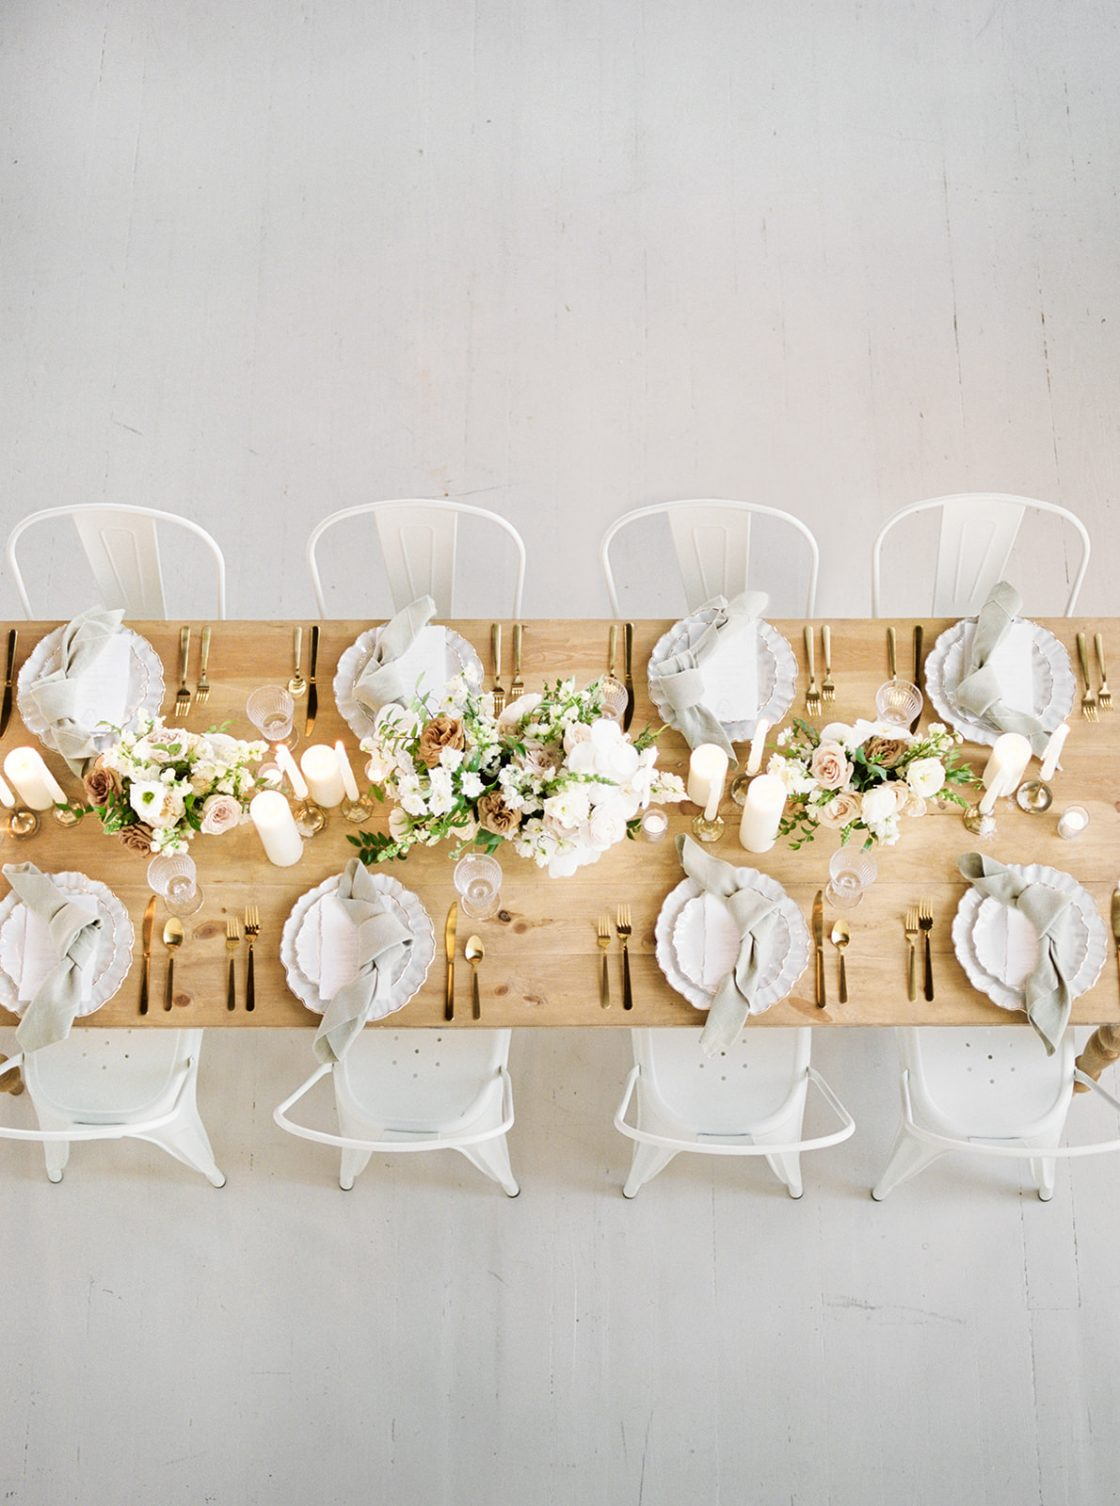 Monochromatic Natural Wedding Tablescape